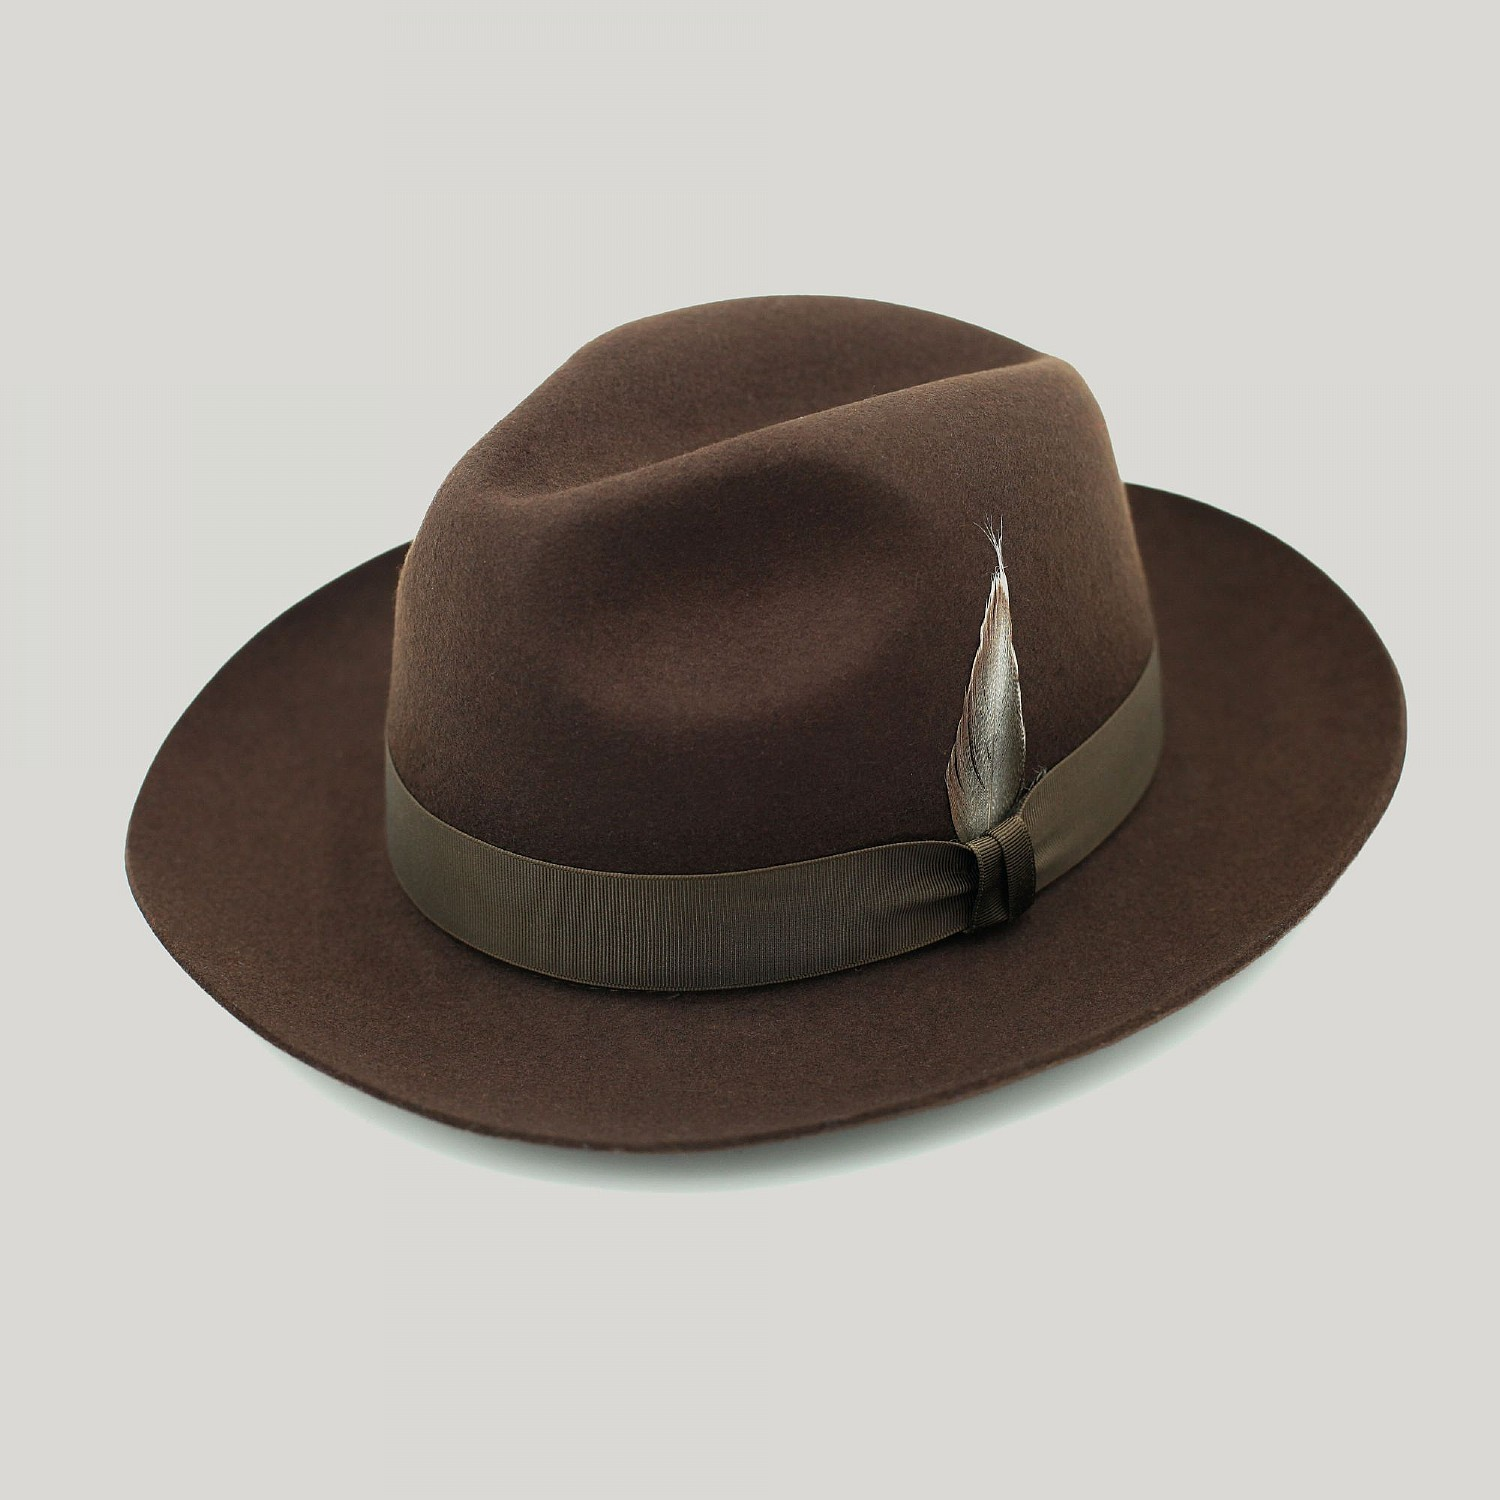 Brown Fedora Classic Wool Felt Hat - Harvie and Hudson 9aad78b60ca